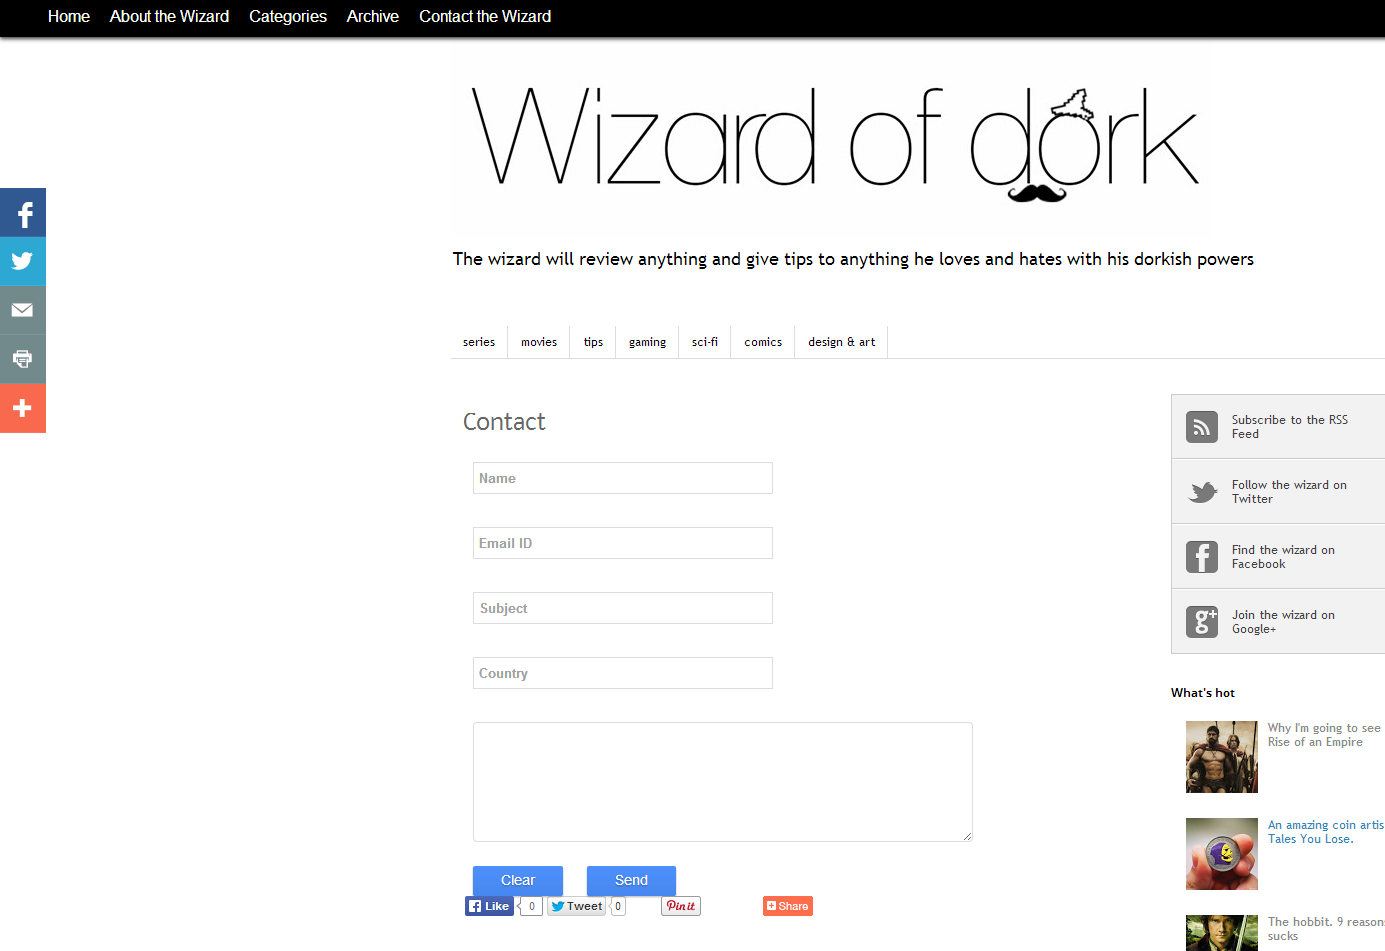 wizard contact form